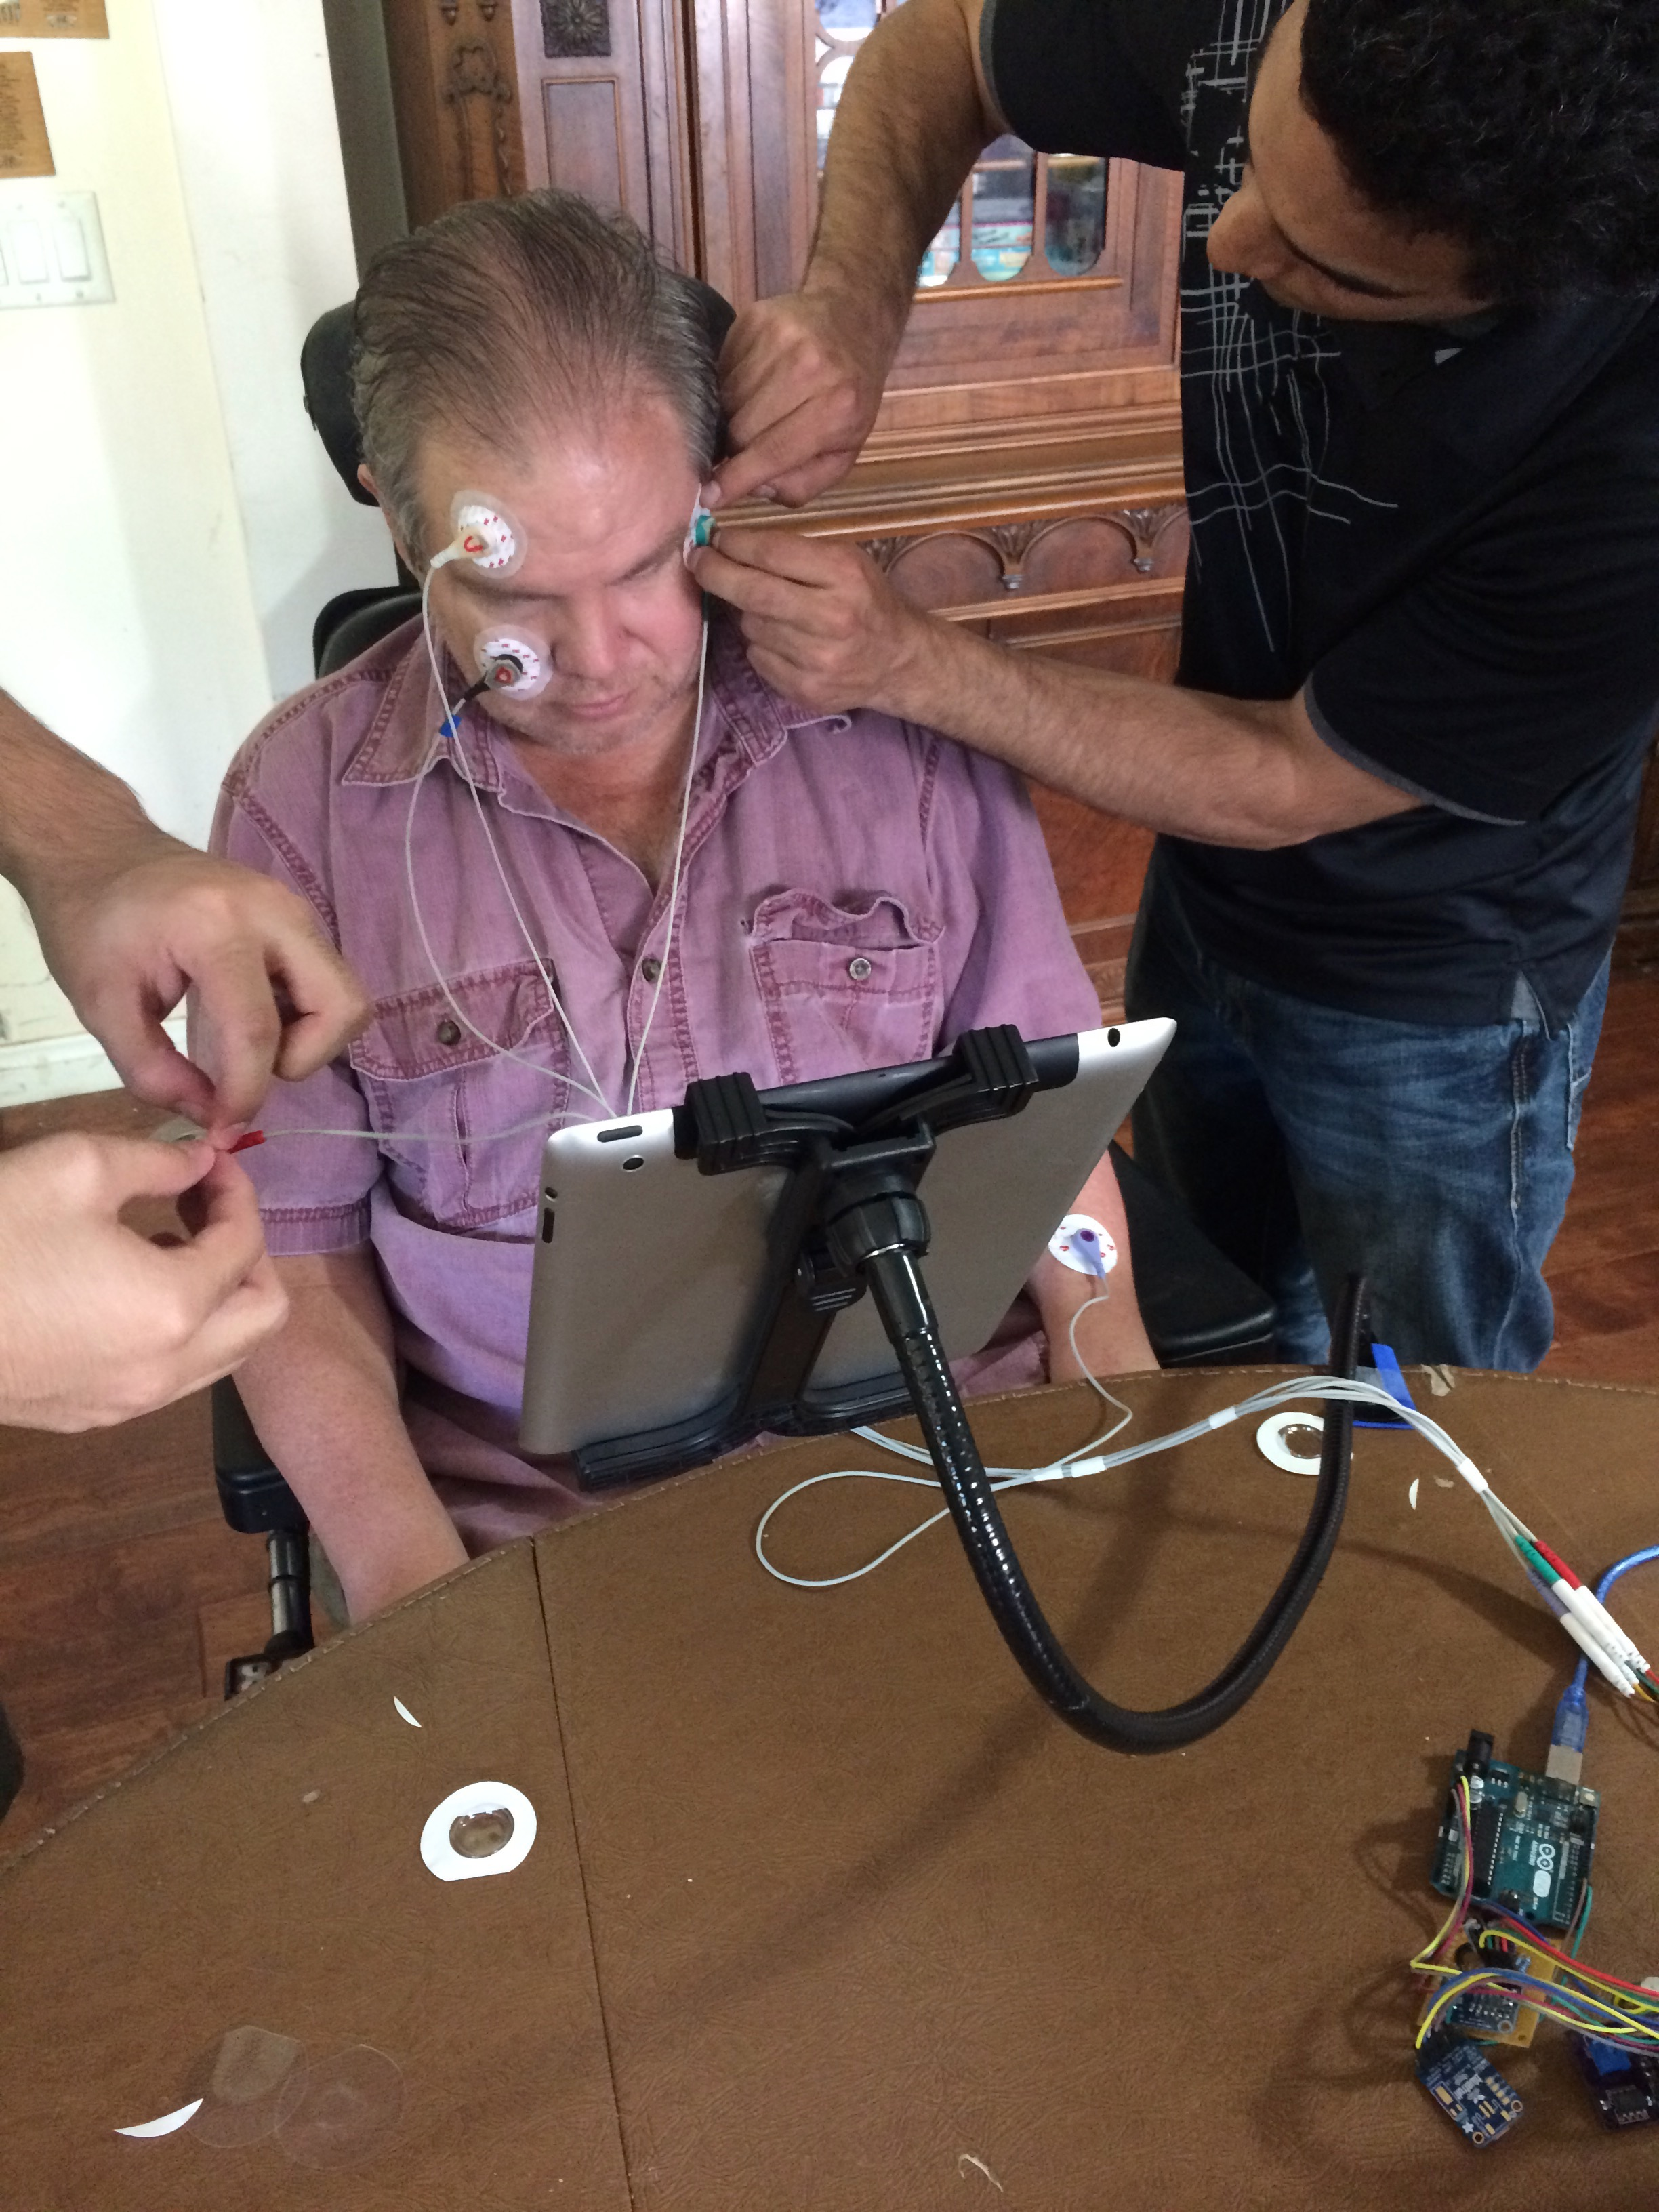 Dominic Nega (left) and Bryce O'Bard attached electrodes to James Blount to test electroocularography equipment. (Photo by Loud Owl)